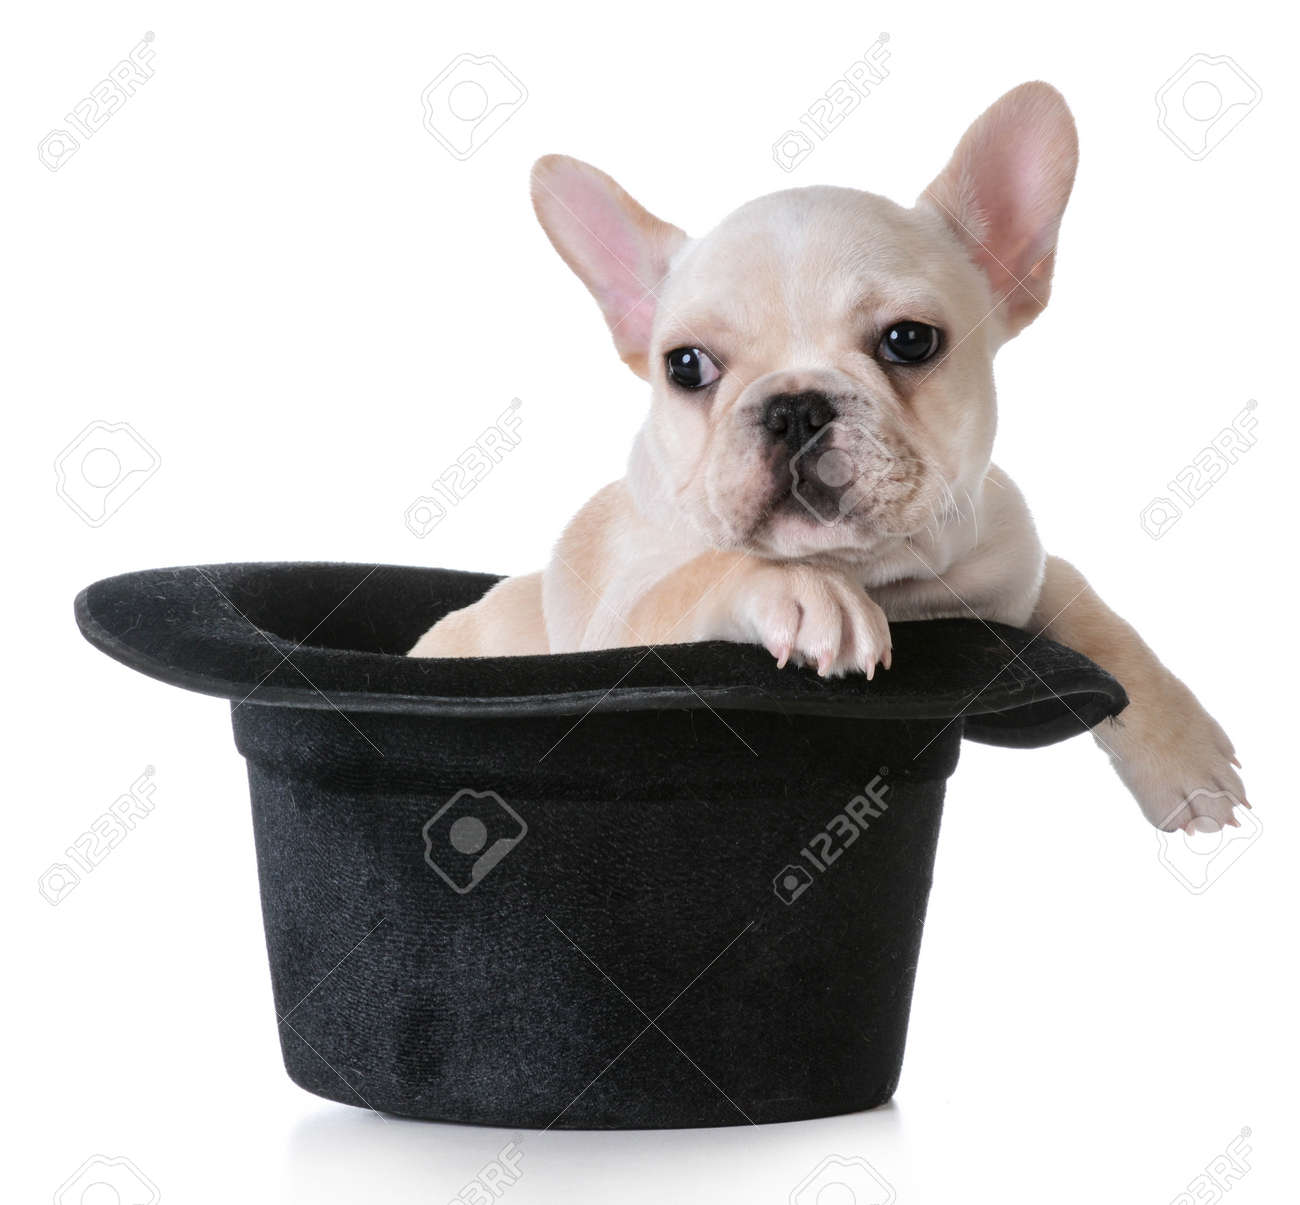 Cute Puppy French Bulldog Inside A Tophat On White Background